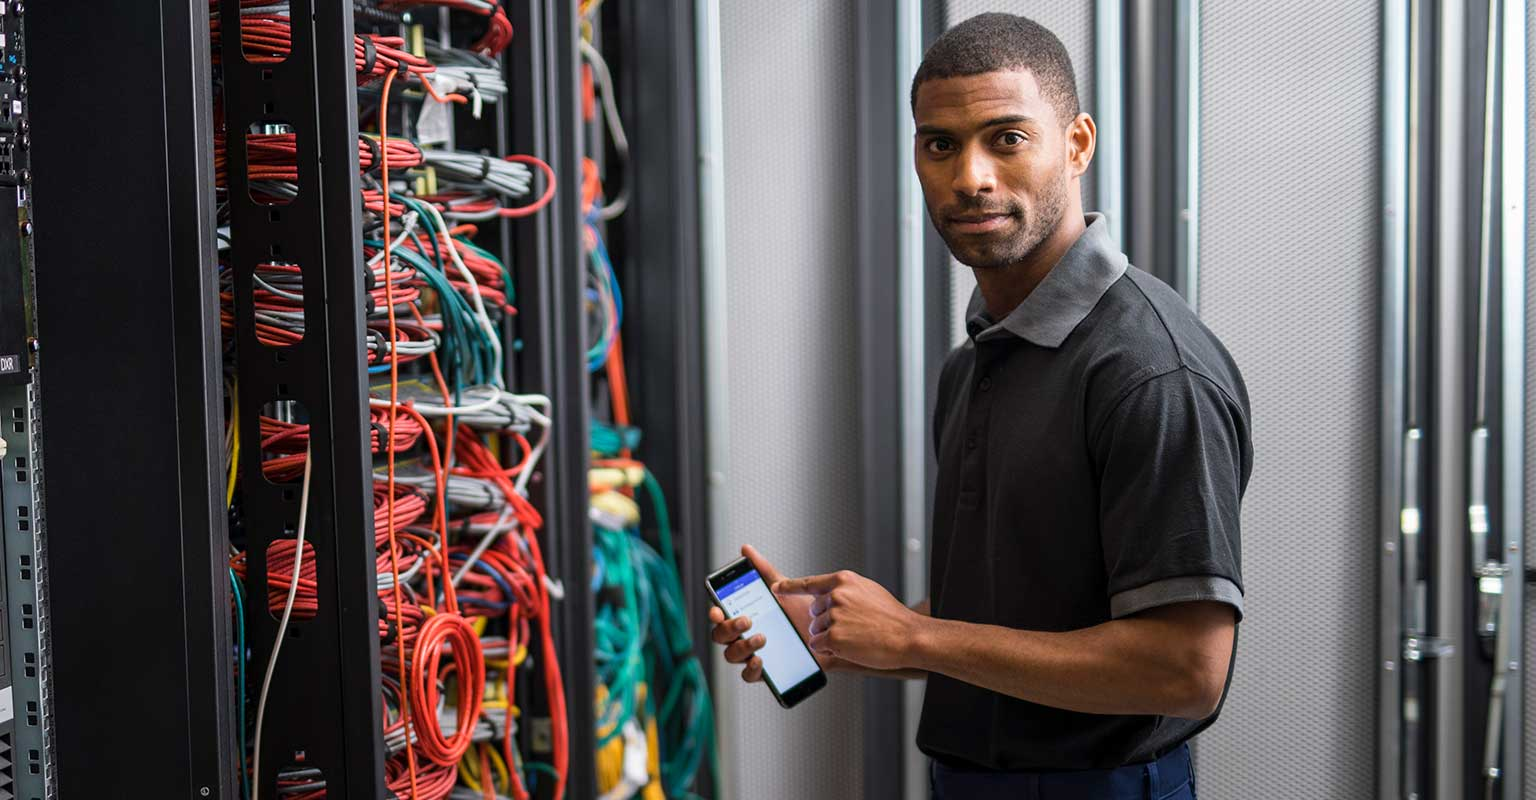 Network technician using Brother iLink&Label app on his smartphone